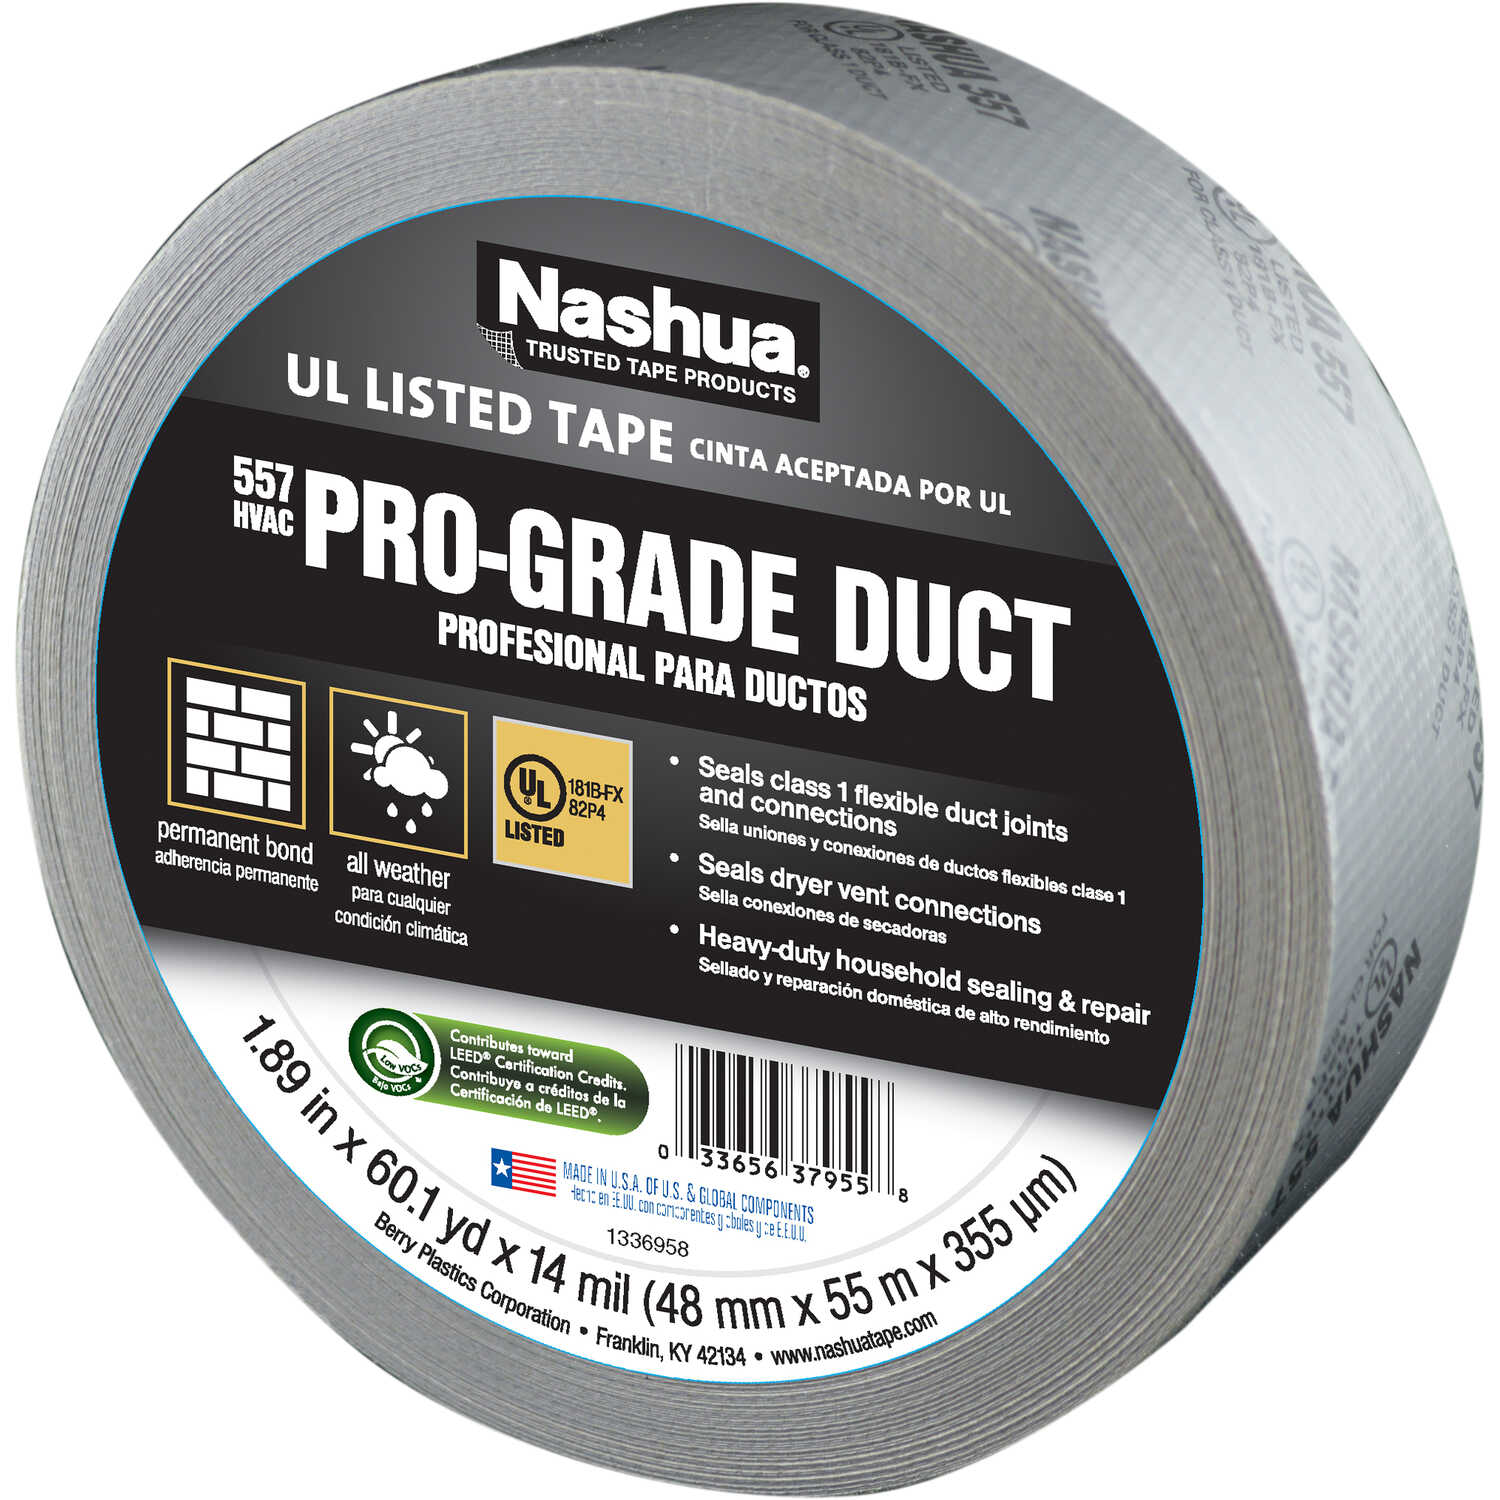 Nashua  557 HVAC  60.1 yd. L x 1.89 in. W Silver  Duct Tape  Printed 181B-FX